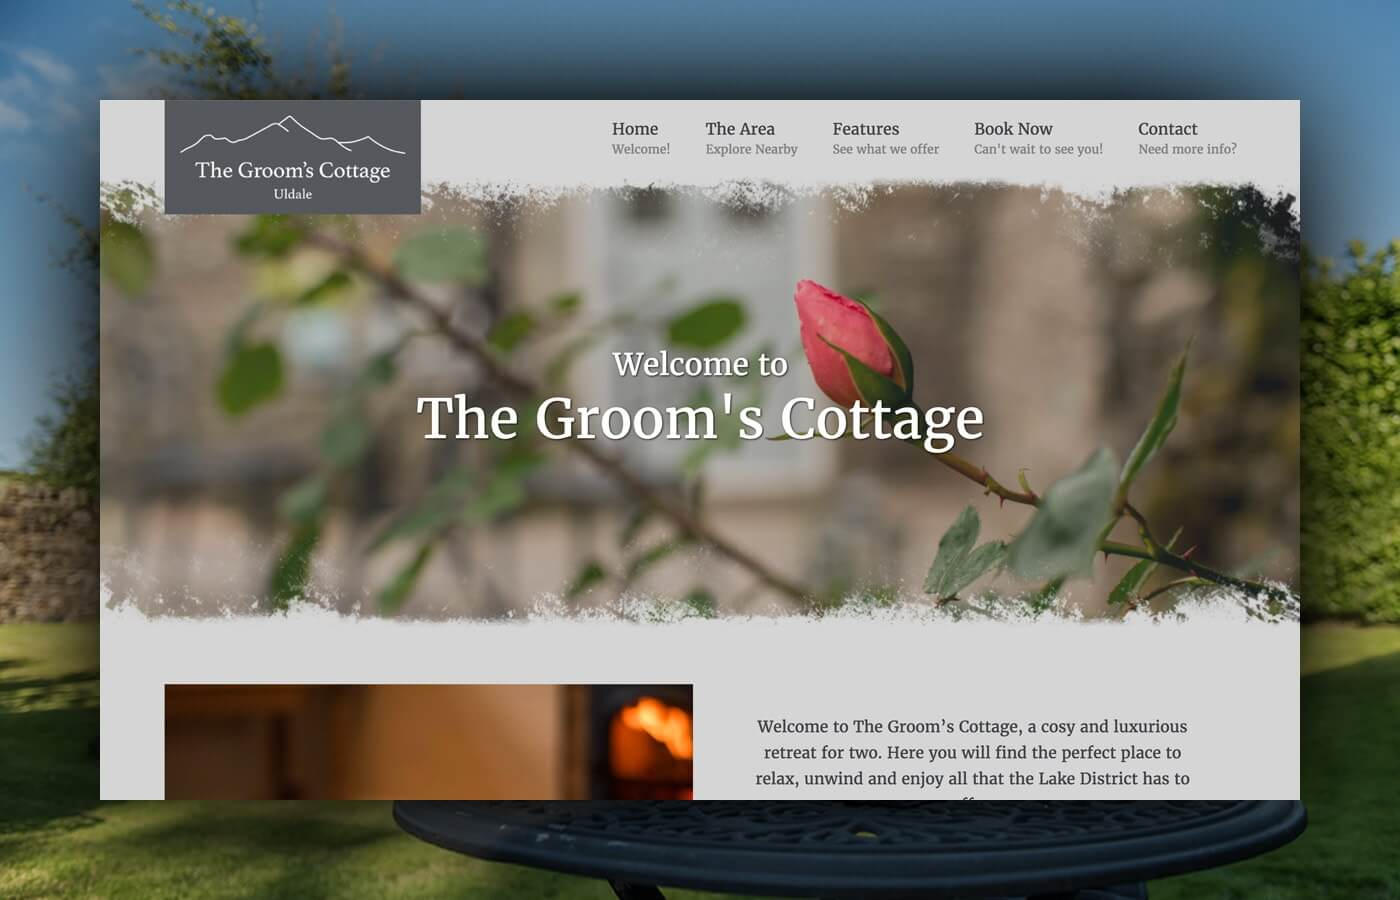 The Groom's Cottage